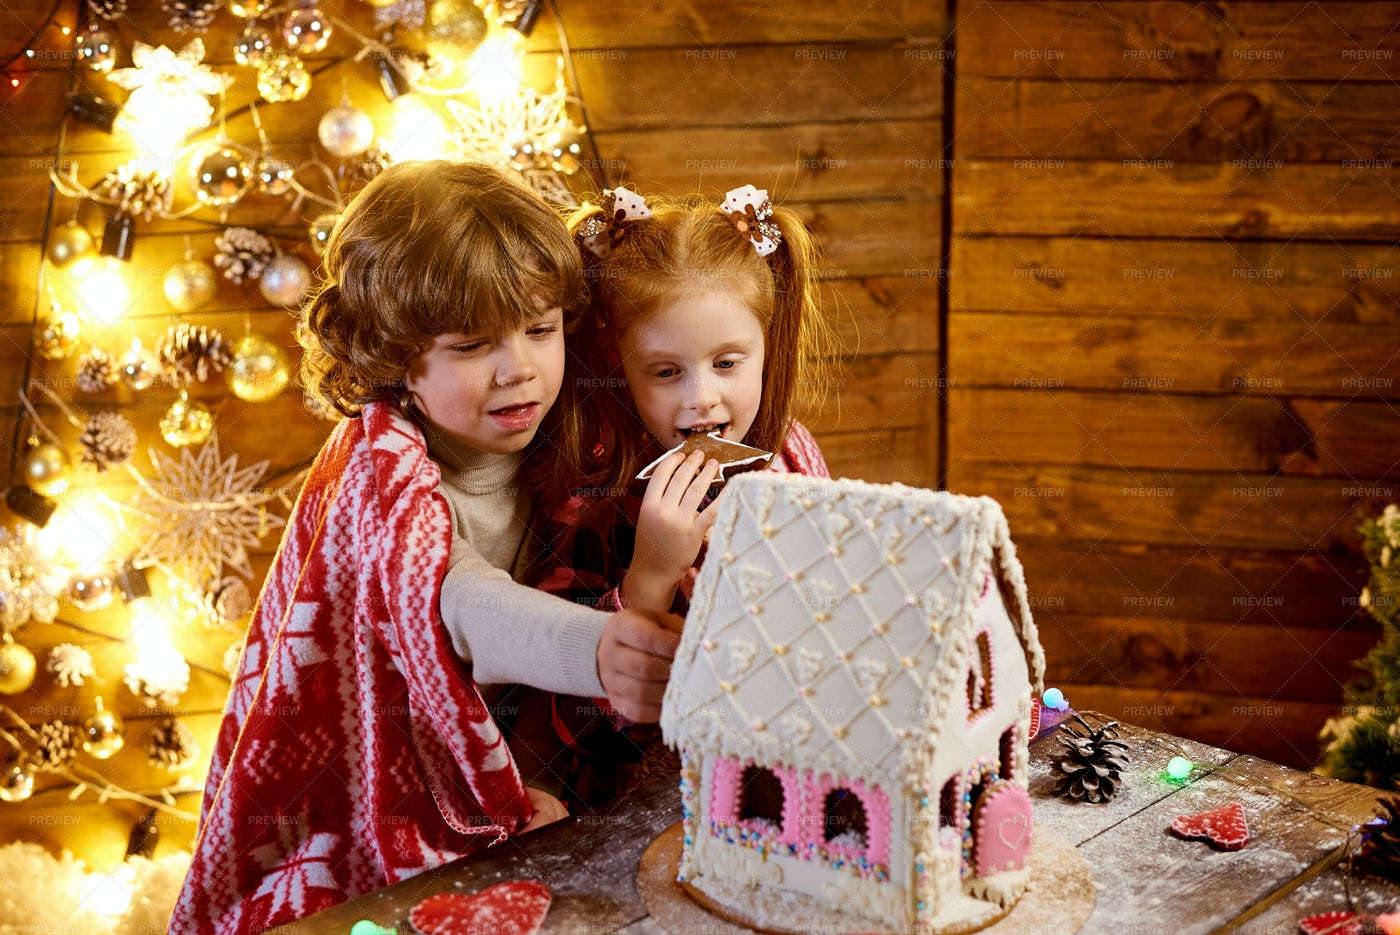 Kids With Gingerbread House: Stock Photos